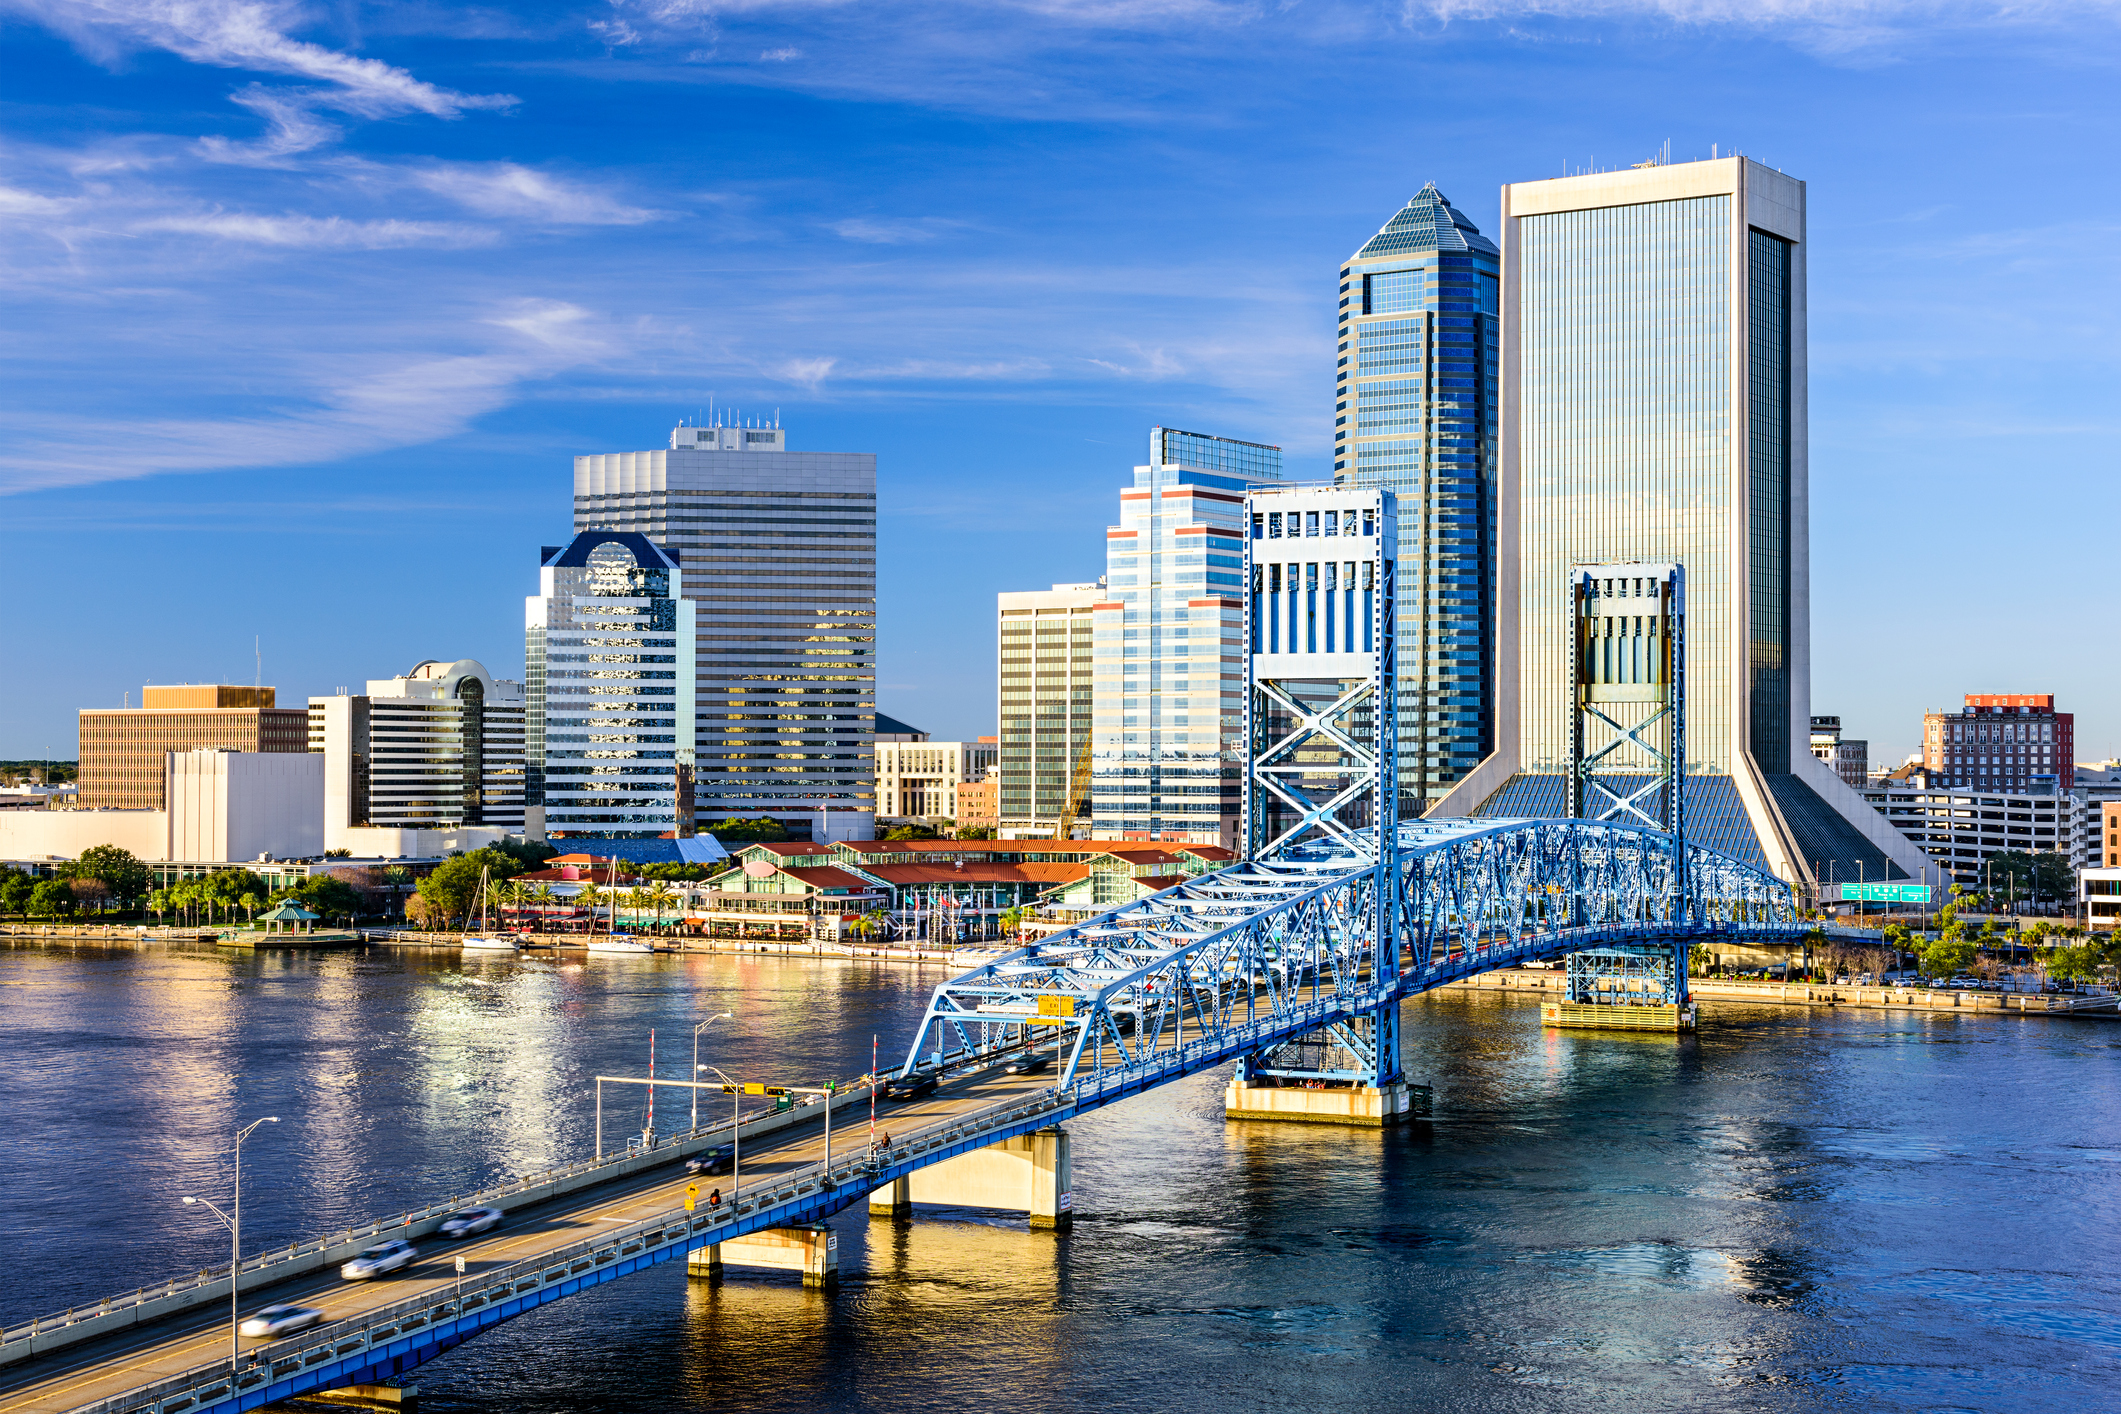 Executive search firm in Jacksonville, FL